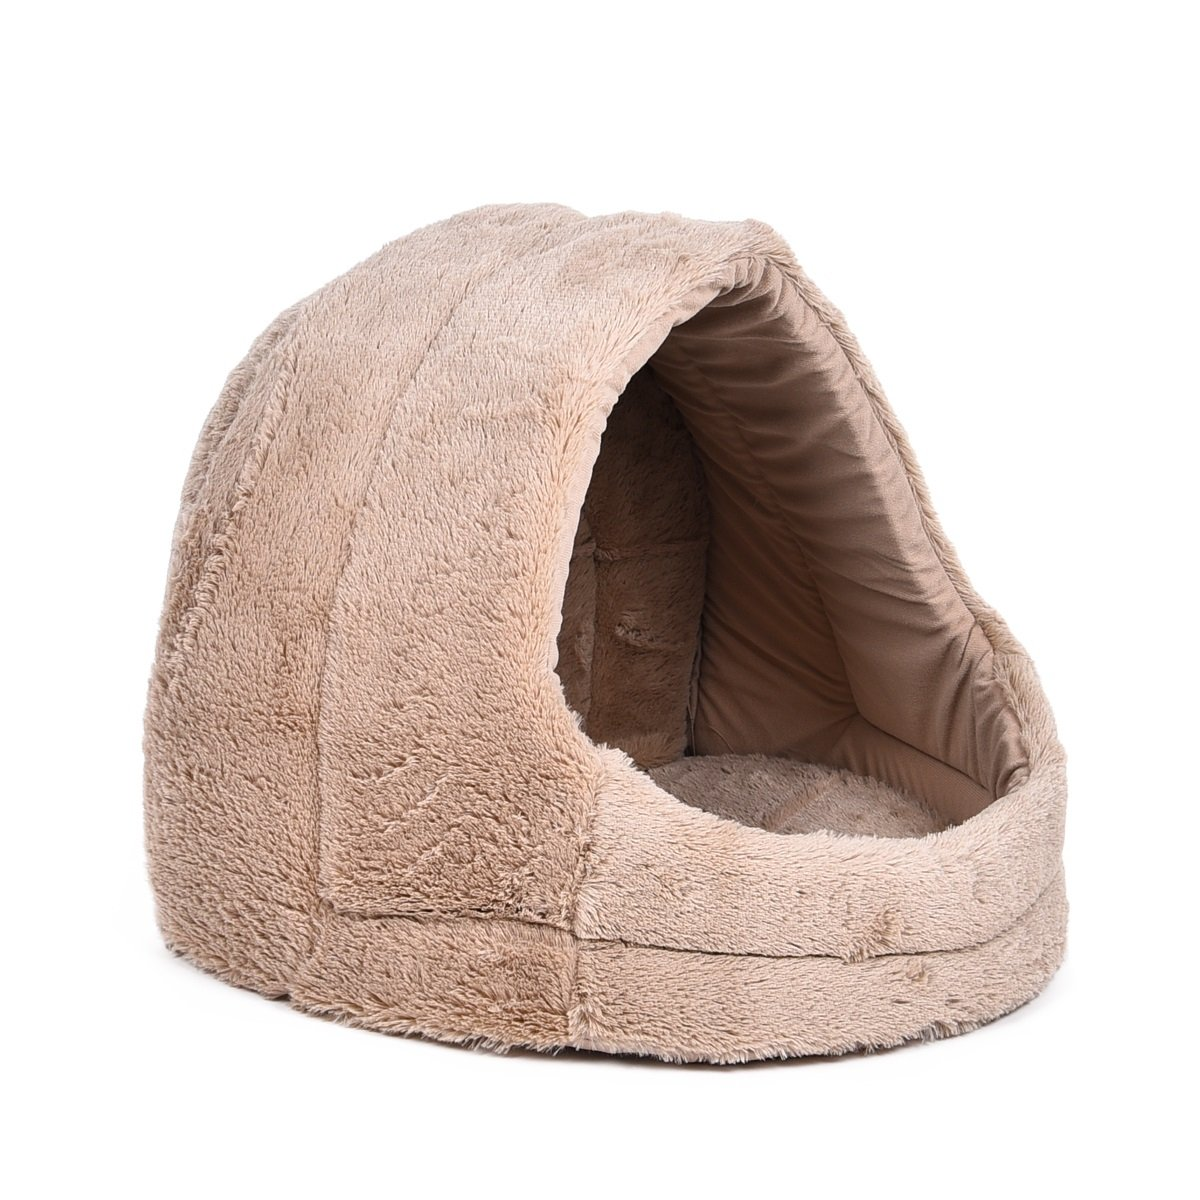 Beige BigShi-AUSPICIOUS Short Plush Covered Dog House Bed Pet Cave Dog Igloo With Removable And Reversible Cushion Bed Et Cushion All Dual Use For Dogs, Cats Rabbits And Small And Medium Sized Animals Super